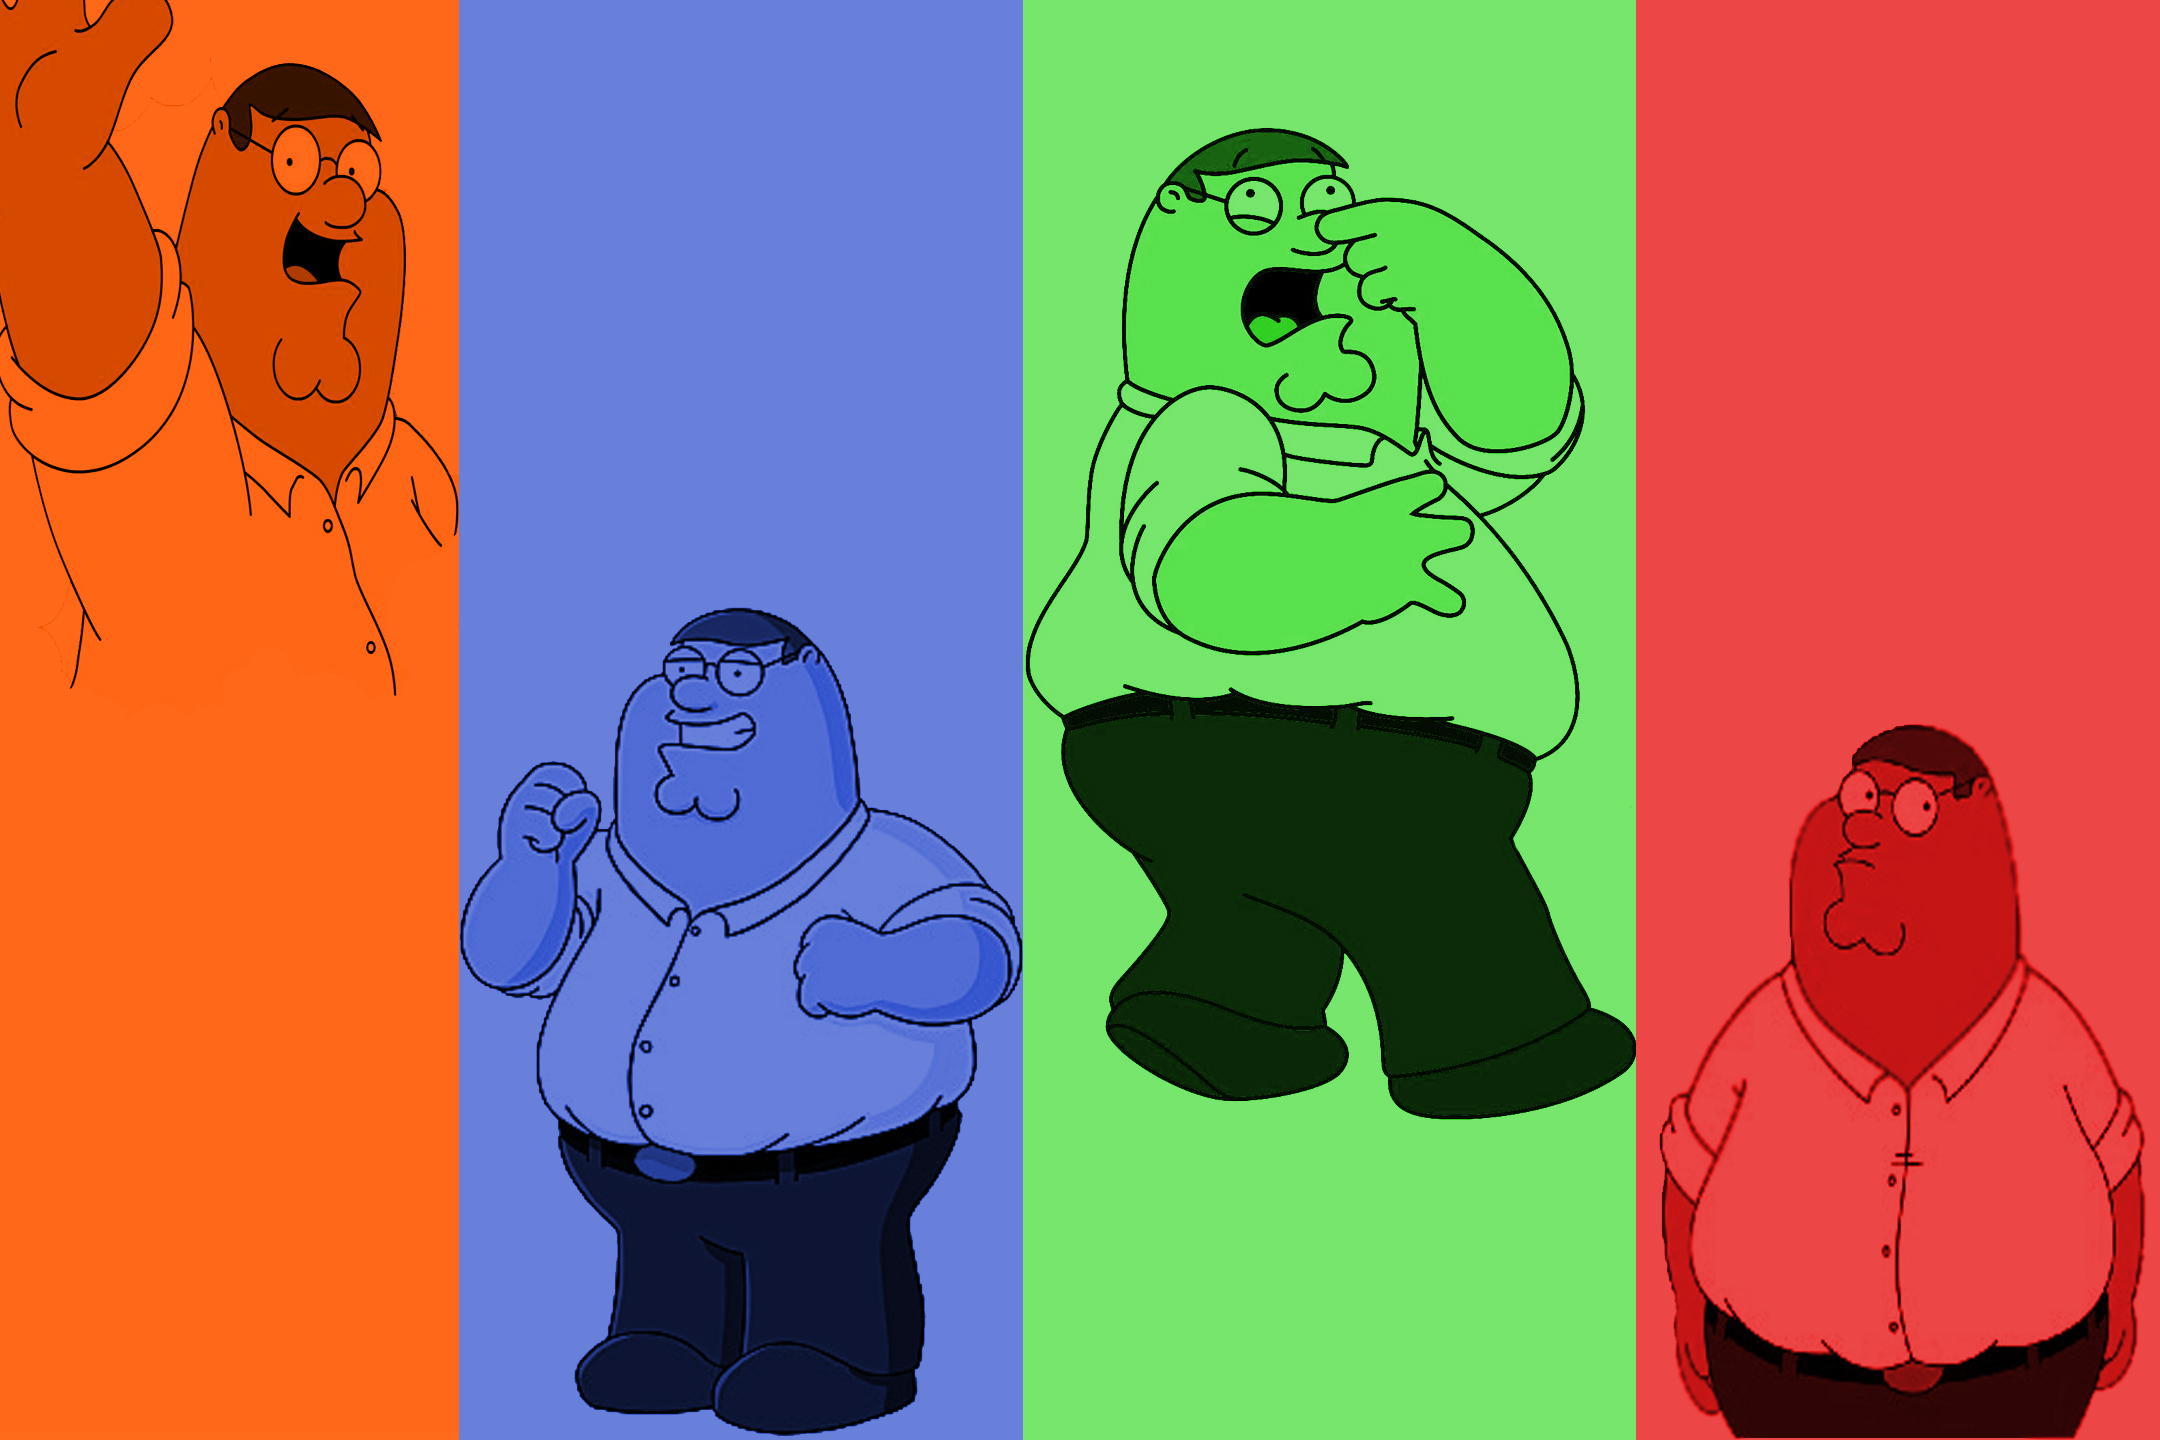 Peter Wallpaper family guy wallpapersjpg 2160x1440